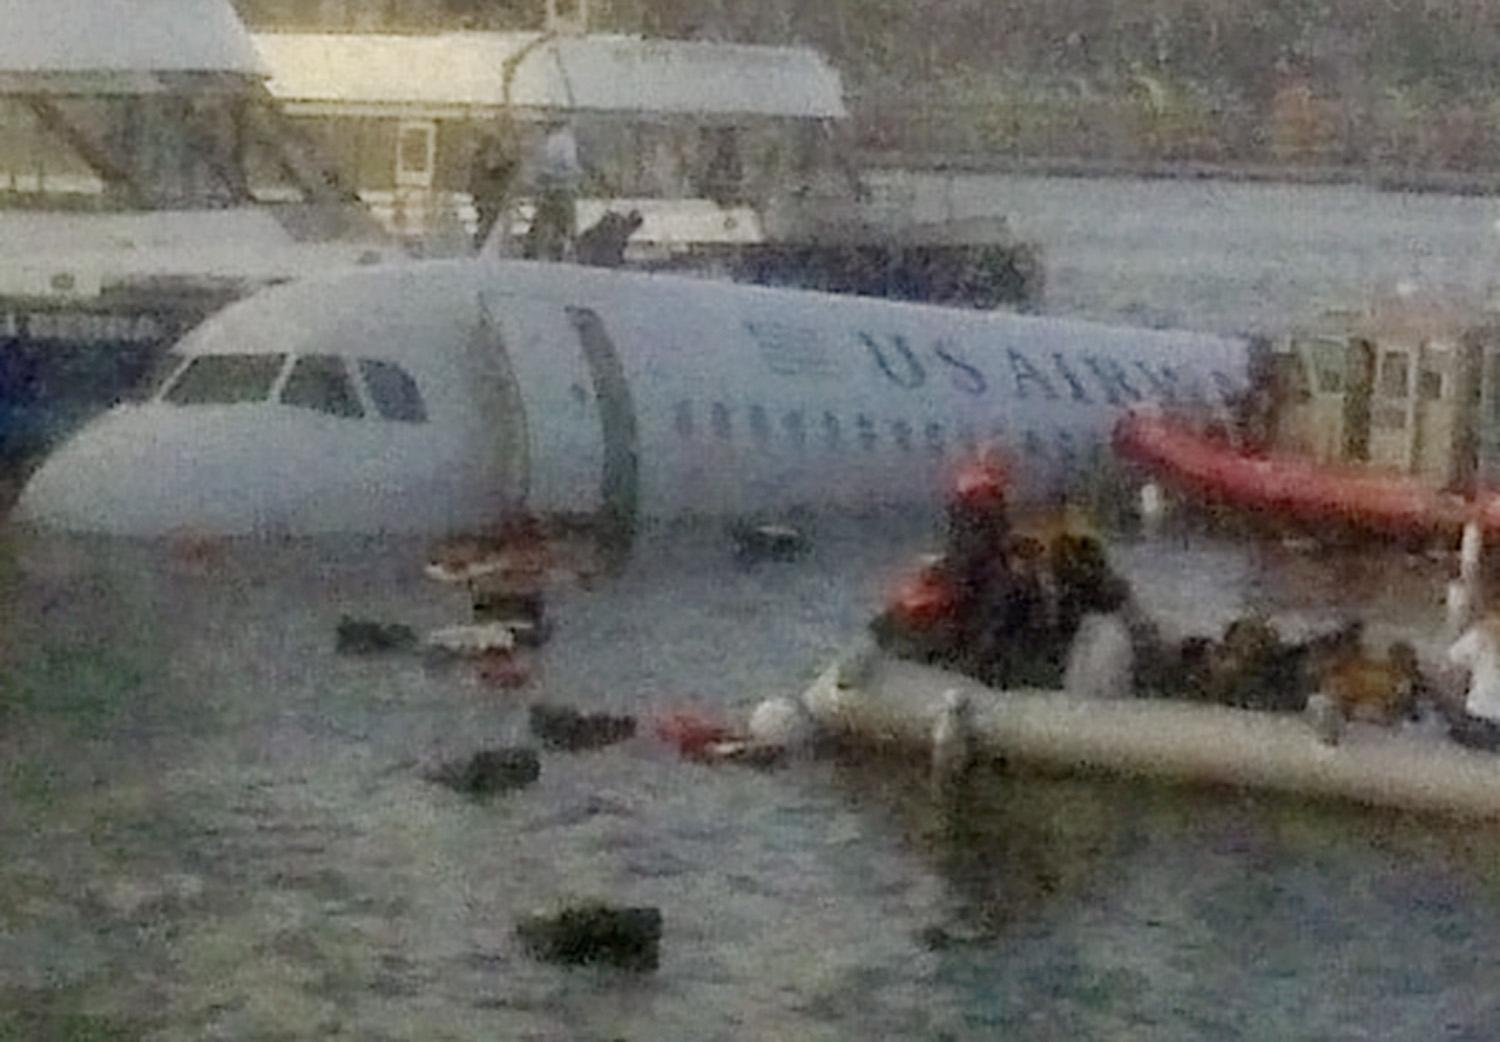 Miracle On the Hudson Rescue flight 1549